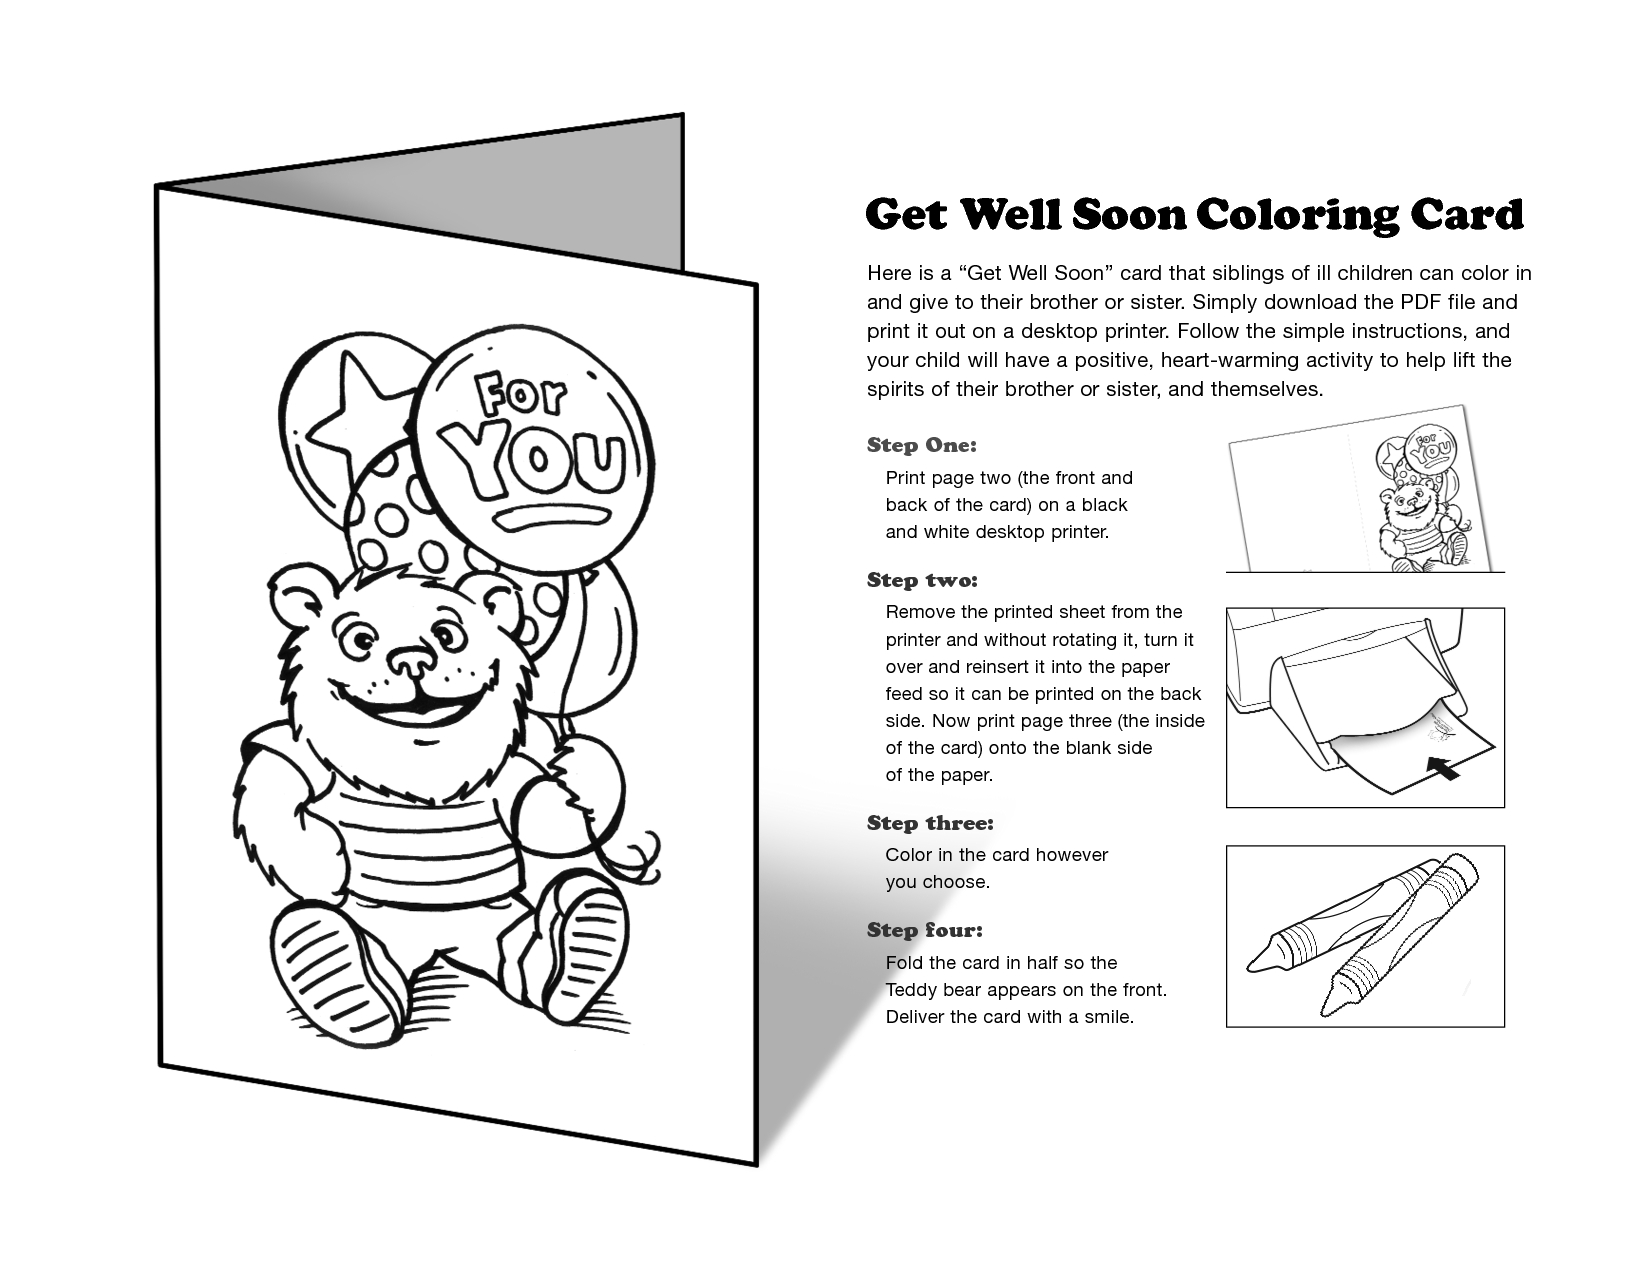 Free Printable Get Well Cards To Color - Printable Cards - Free Printable Get Well Cards To Color